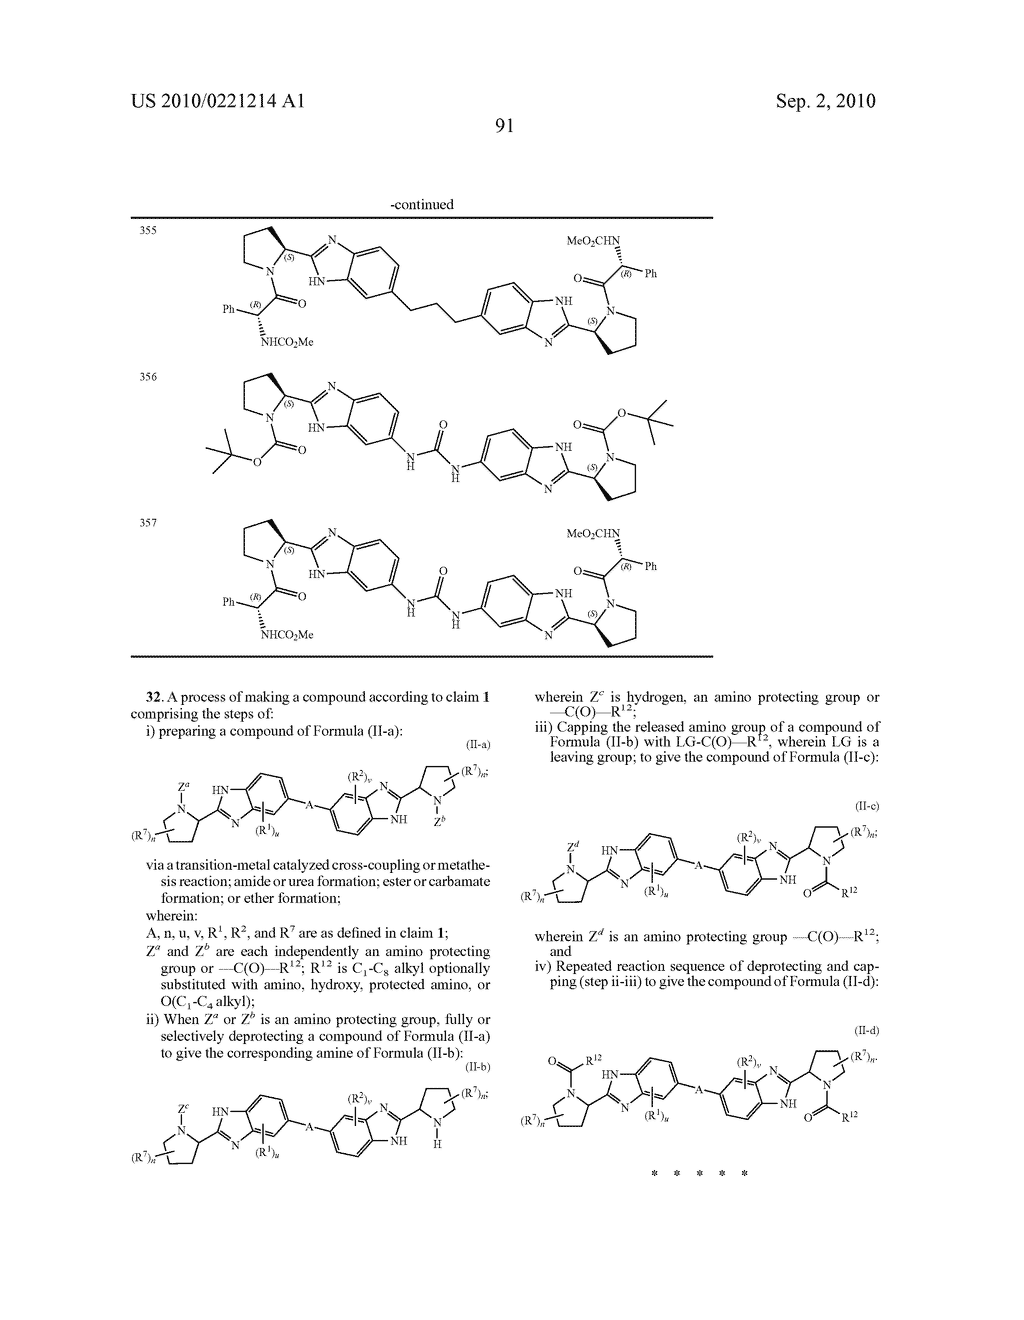 LINKED DIBENZIMIDAZOLE DERIVATIVES - diagram, schematic, and image 92